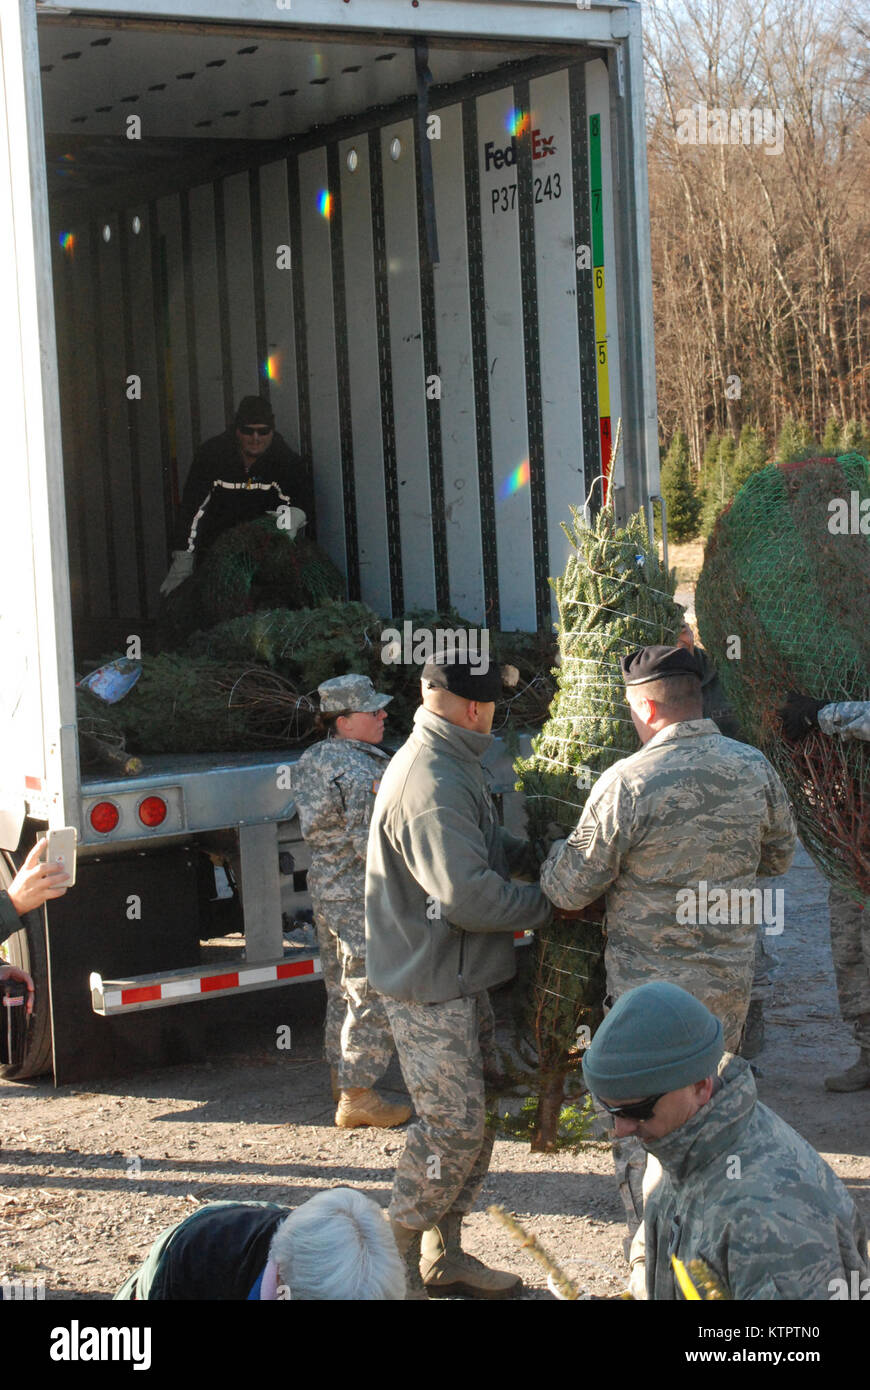 Twenty members of the New York Army and Air National Guard volunteered their time to help load about 125 donated Stock Photo